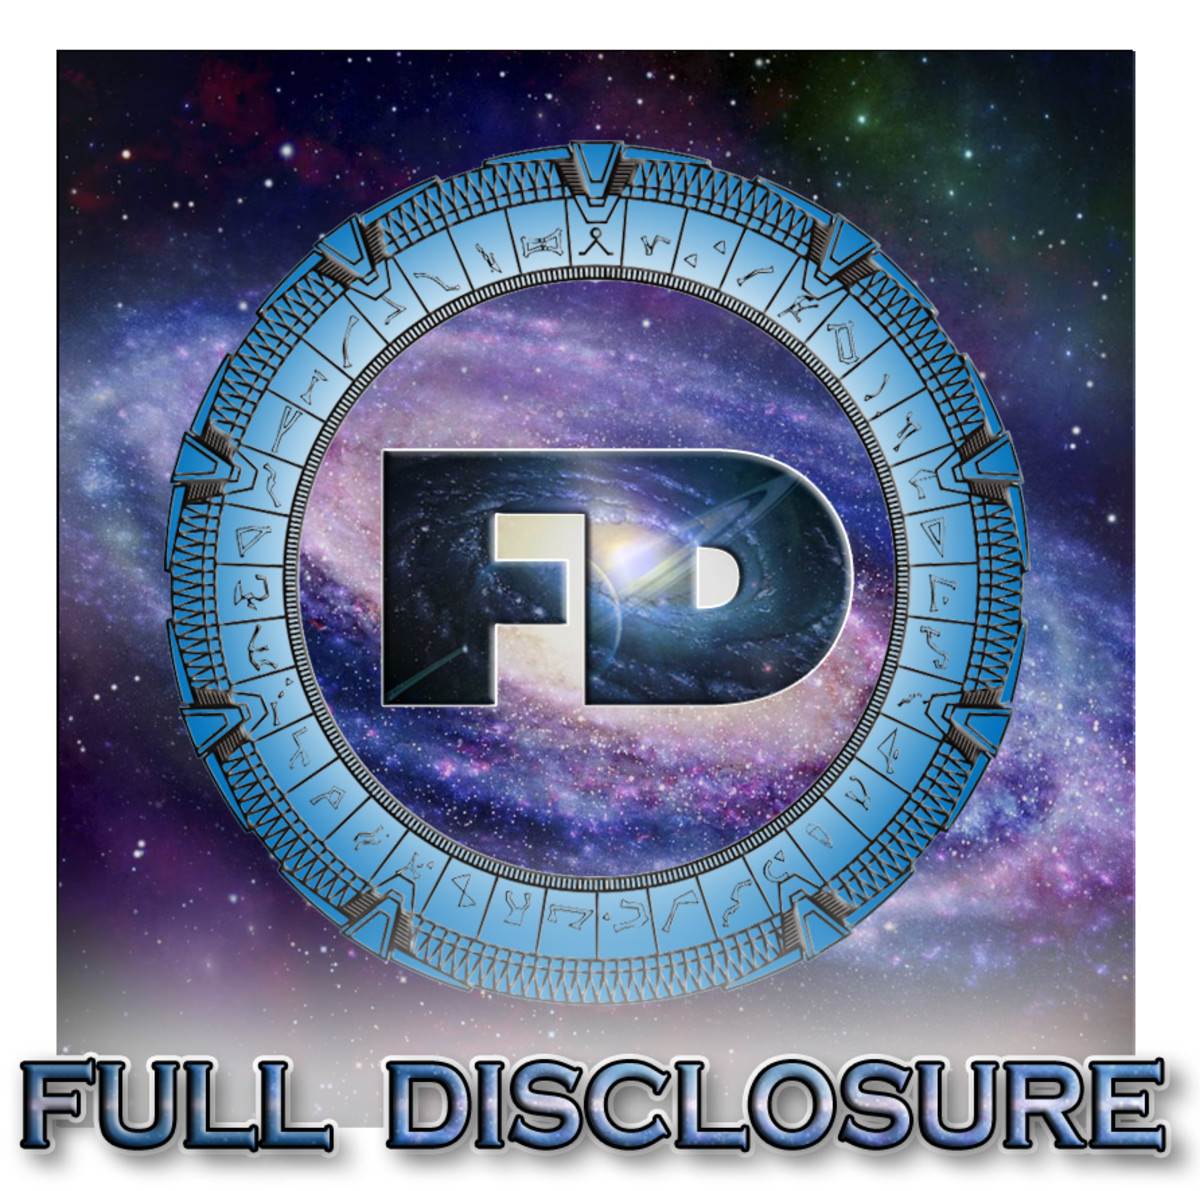 Full Disclosure means facing our fears, learning the truth and exposing the deception that has kept mankind mired in everlasting ignorance.